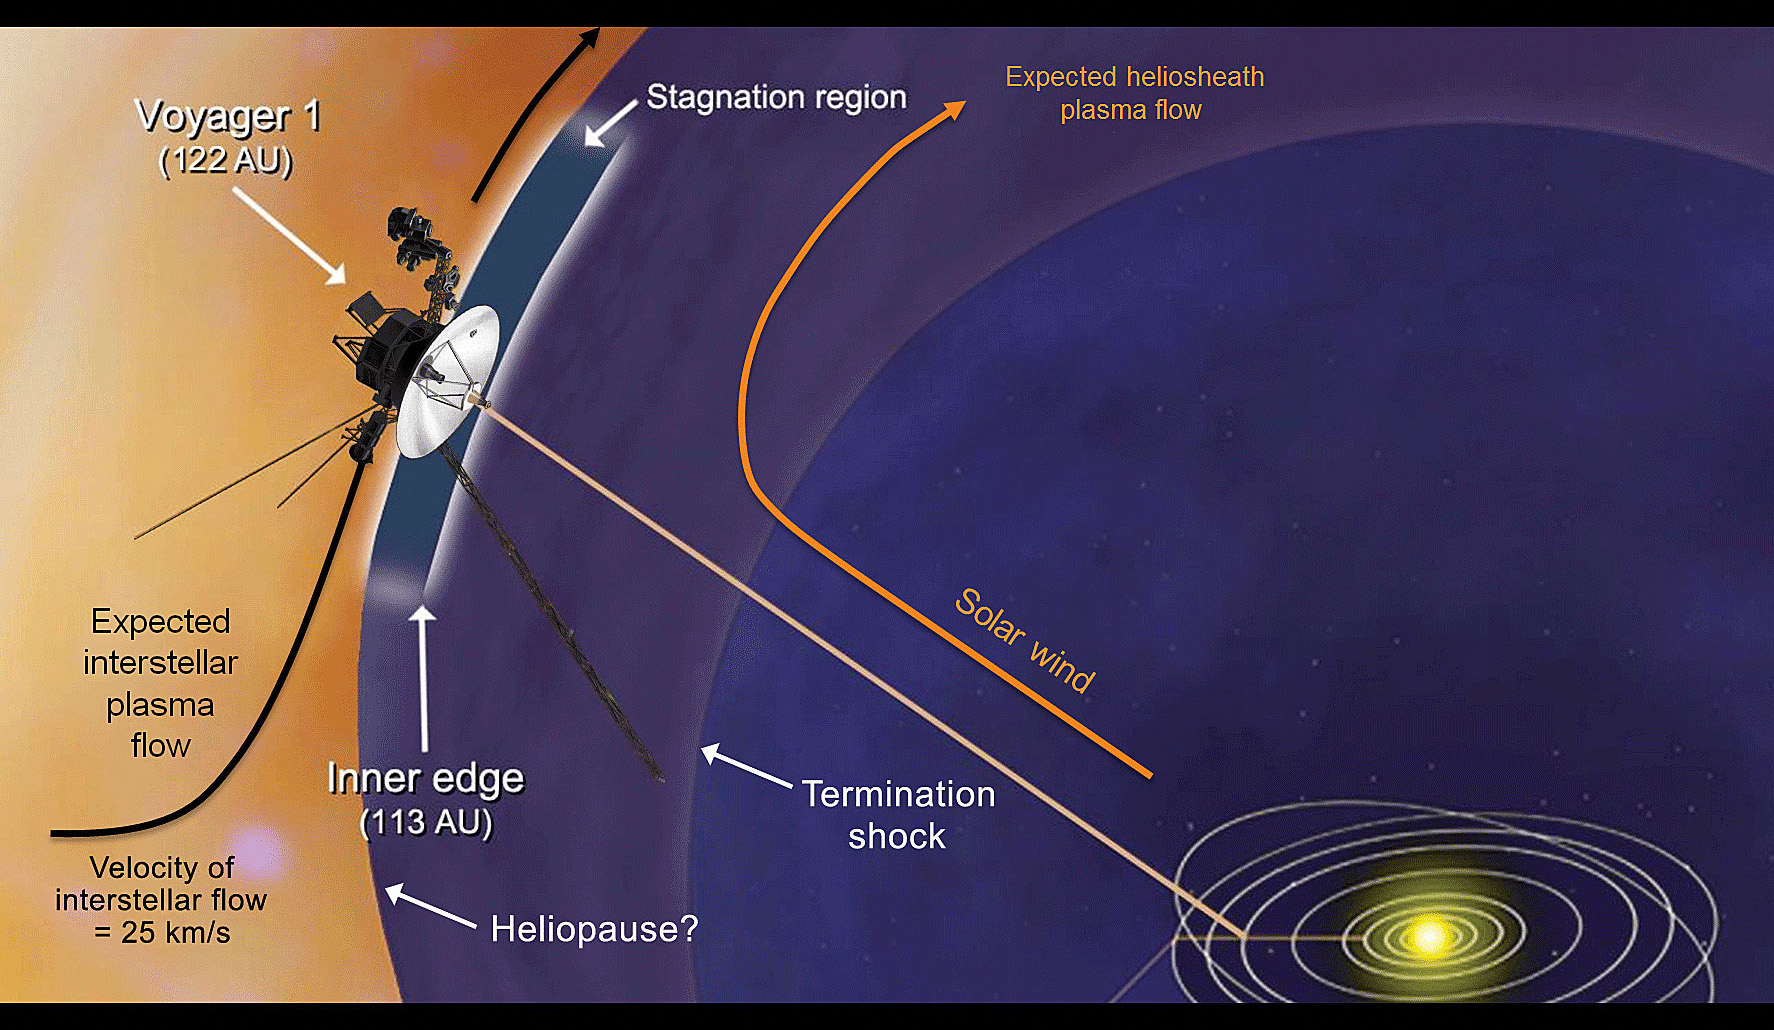 Artist's concept shows plasma flows around NASA's Voyager 1 spacecraft as it approaches interstellar space. The heliopause is the boundary between the bubble of charged particles around our sun - known as the heliosphere - and interstellar space. Its location is still a mystery and it is not clear what should be expected once the spacecraft reaches interstellar space. Credit: NASA/JPL-Caltech/JHUAPL